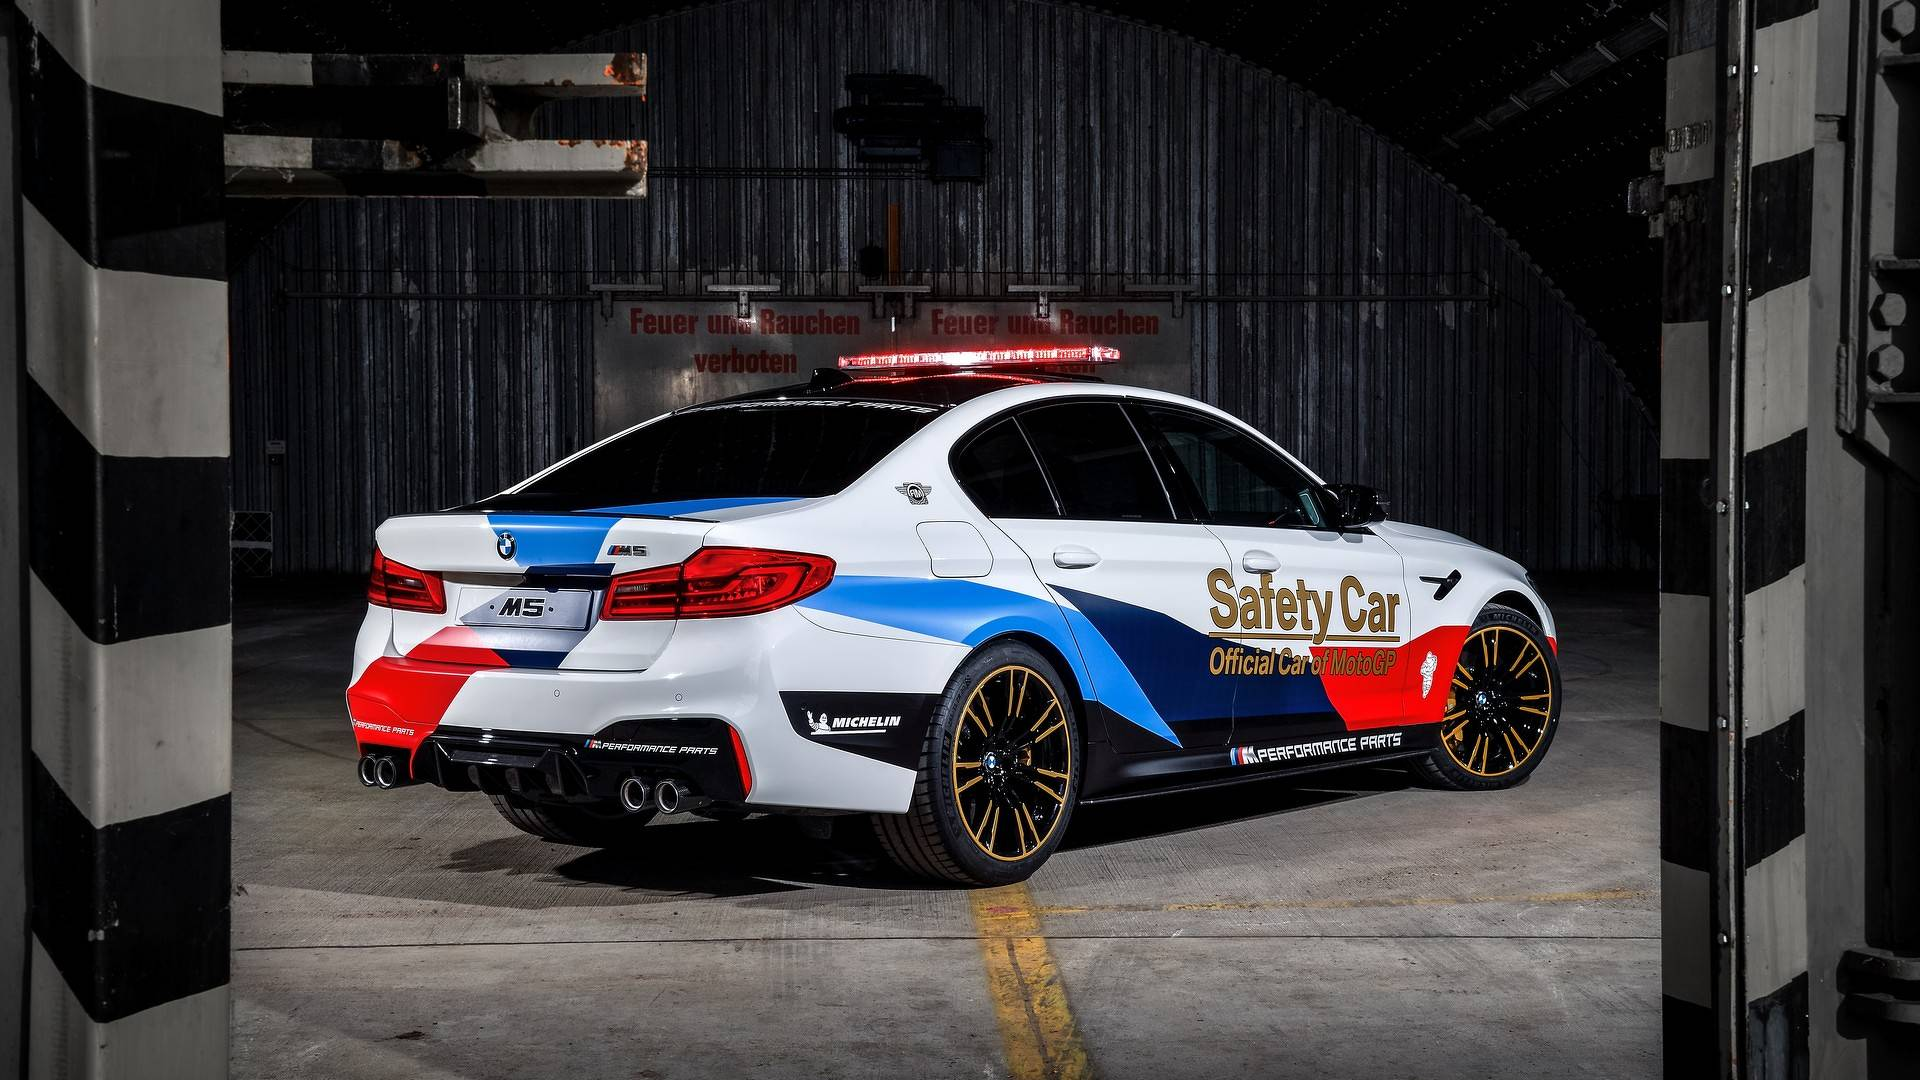 bmw-m5-motogp-safety-car (20)